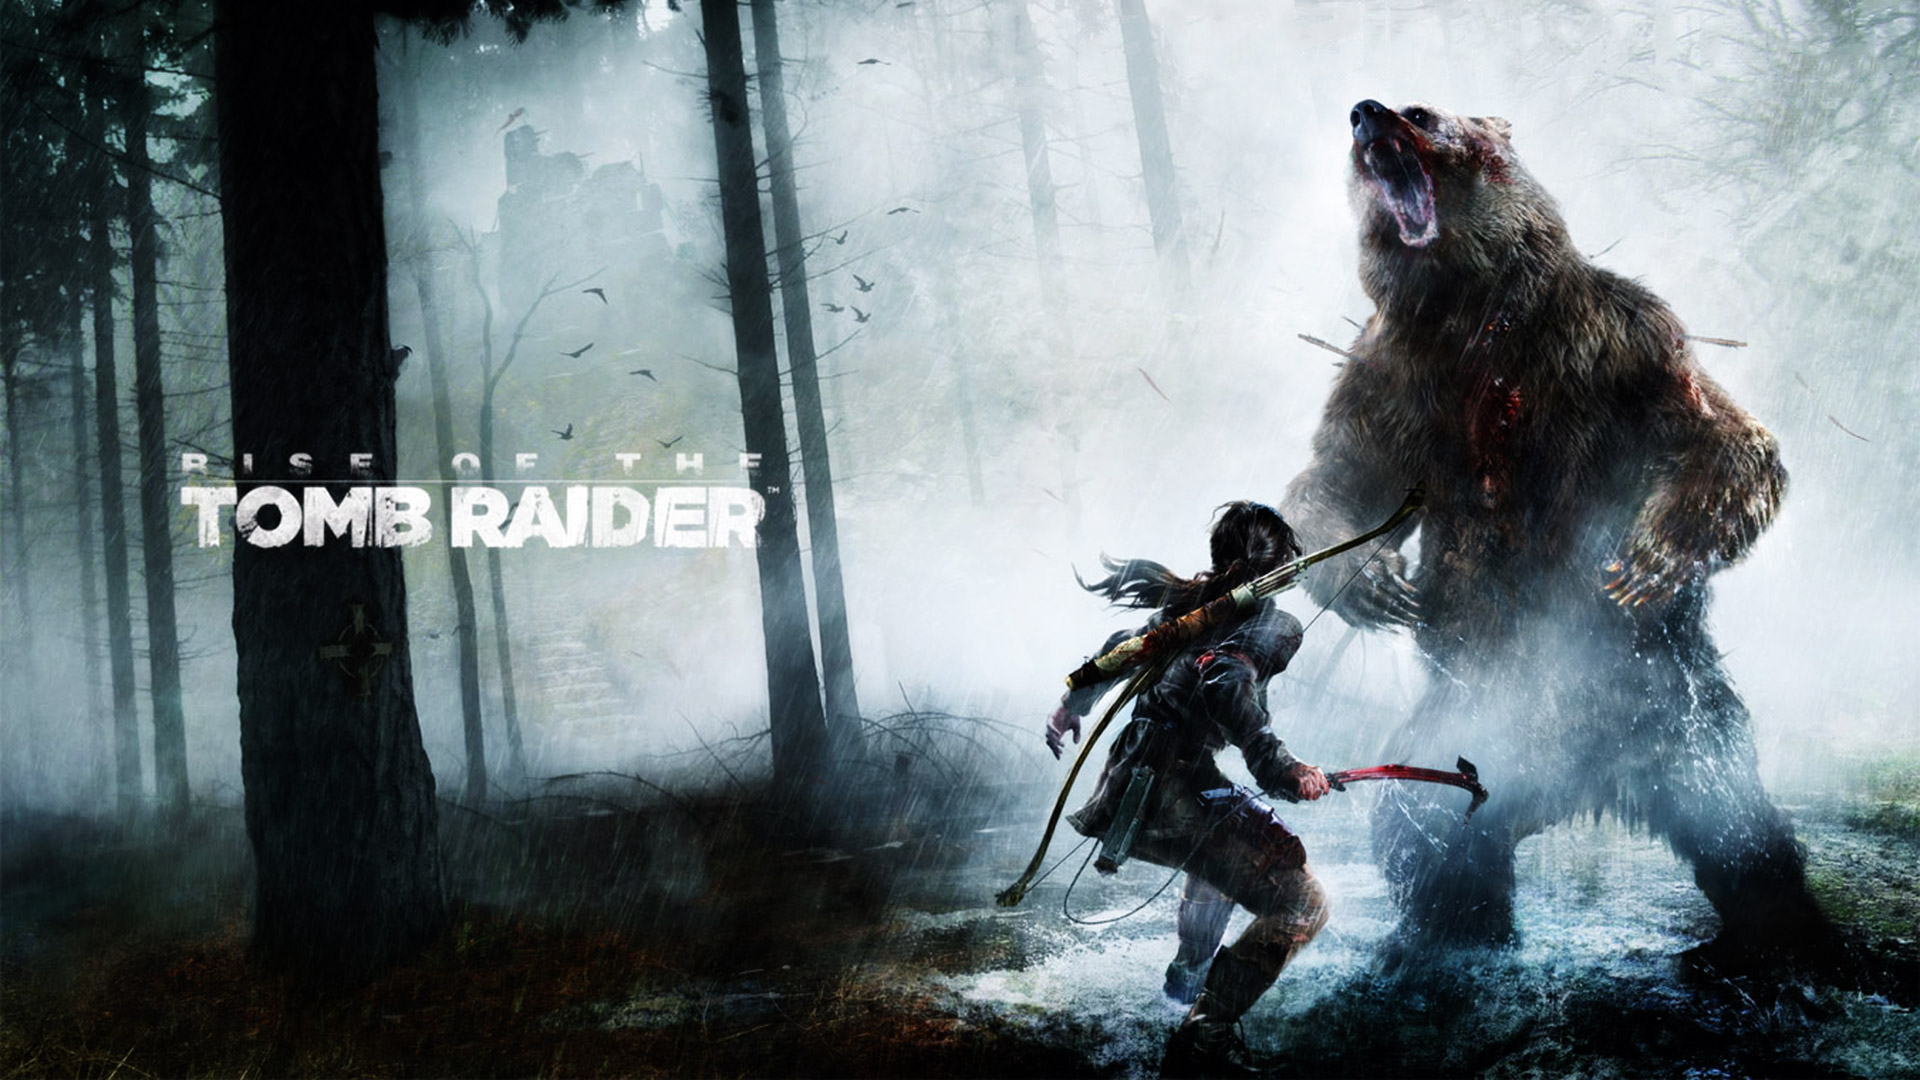 Rise of the Tomb Raider Wallpaper in 1920x1080 1920x1080